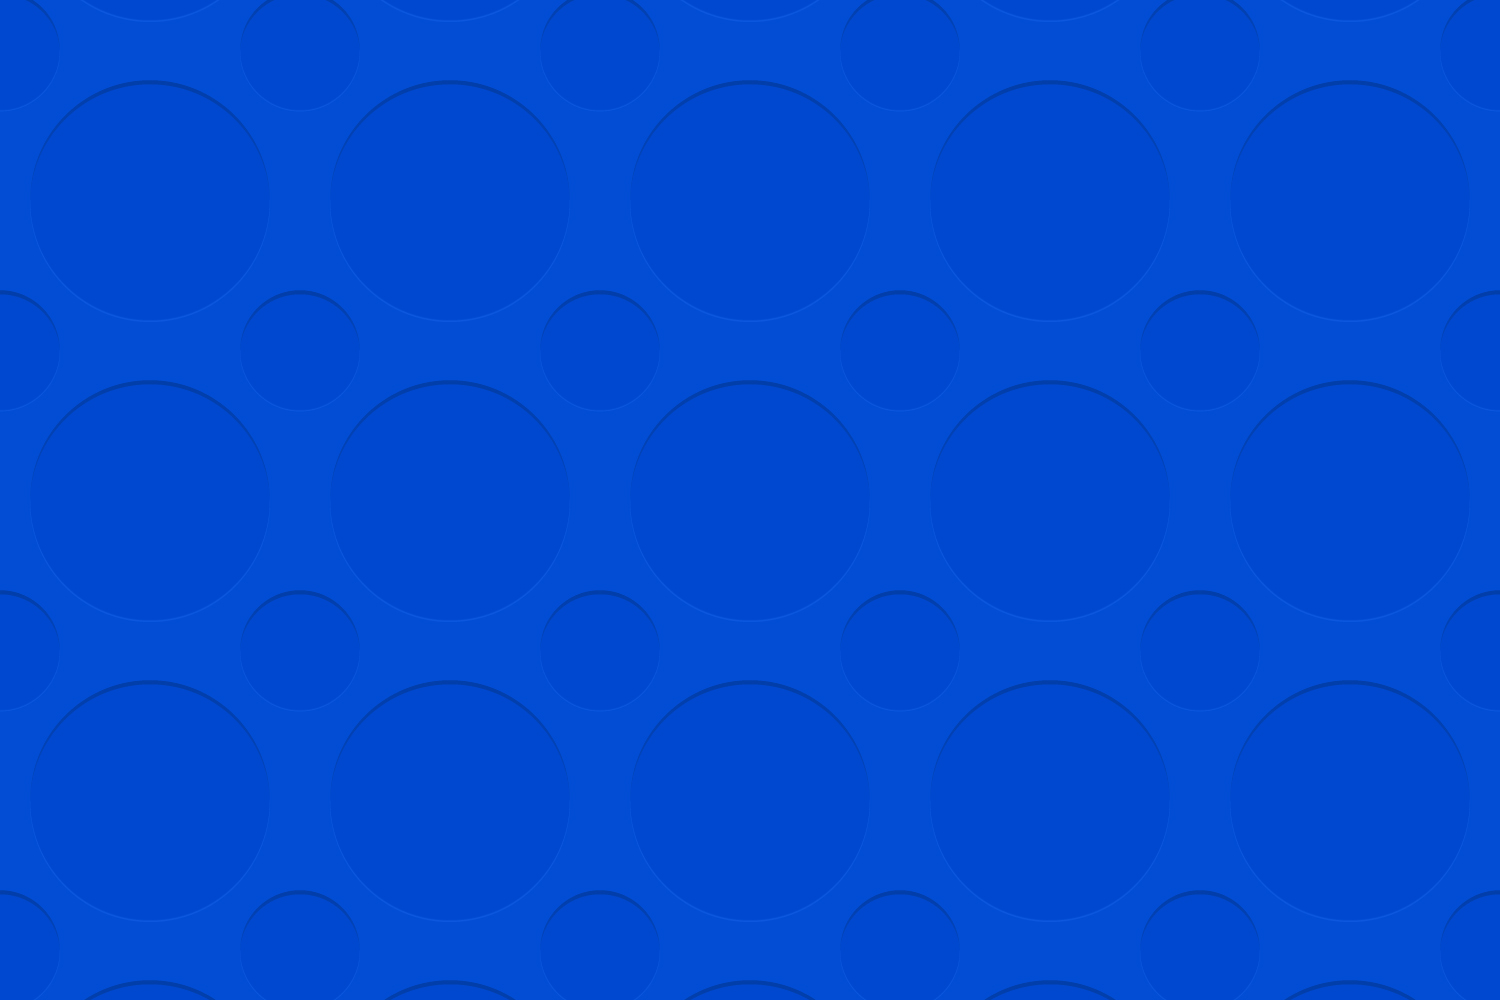 16 Seamless Circle Patterns (AI, EPS, JPG 5000x5000) example image 7